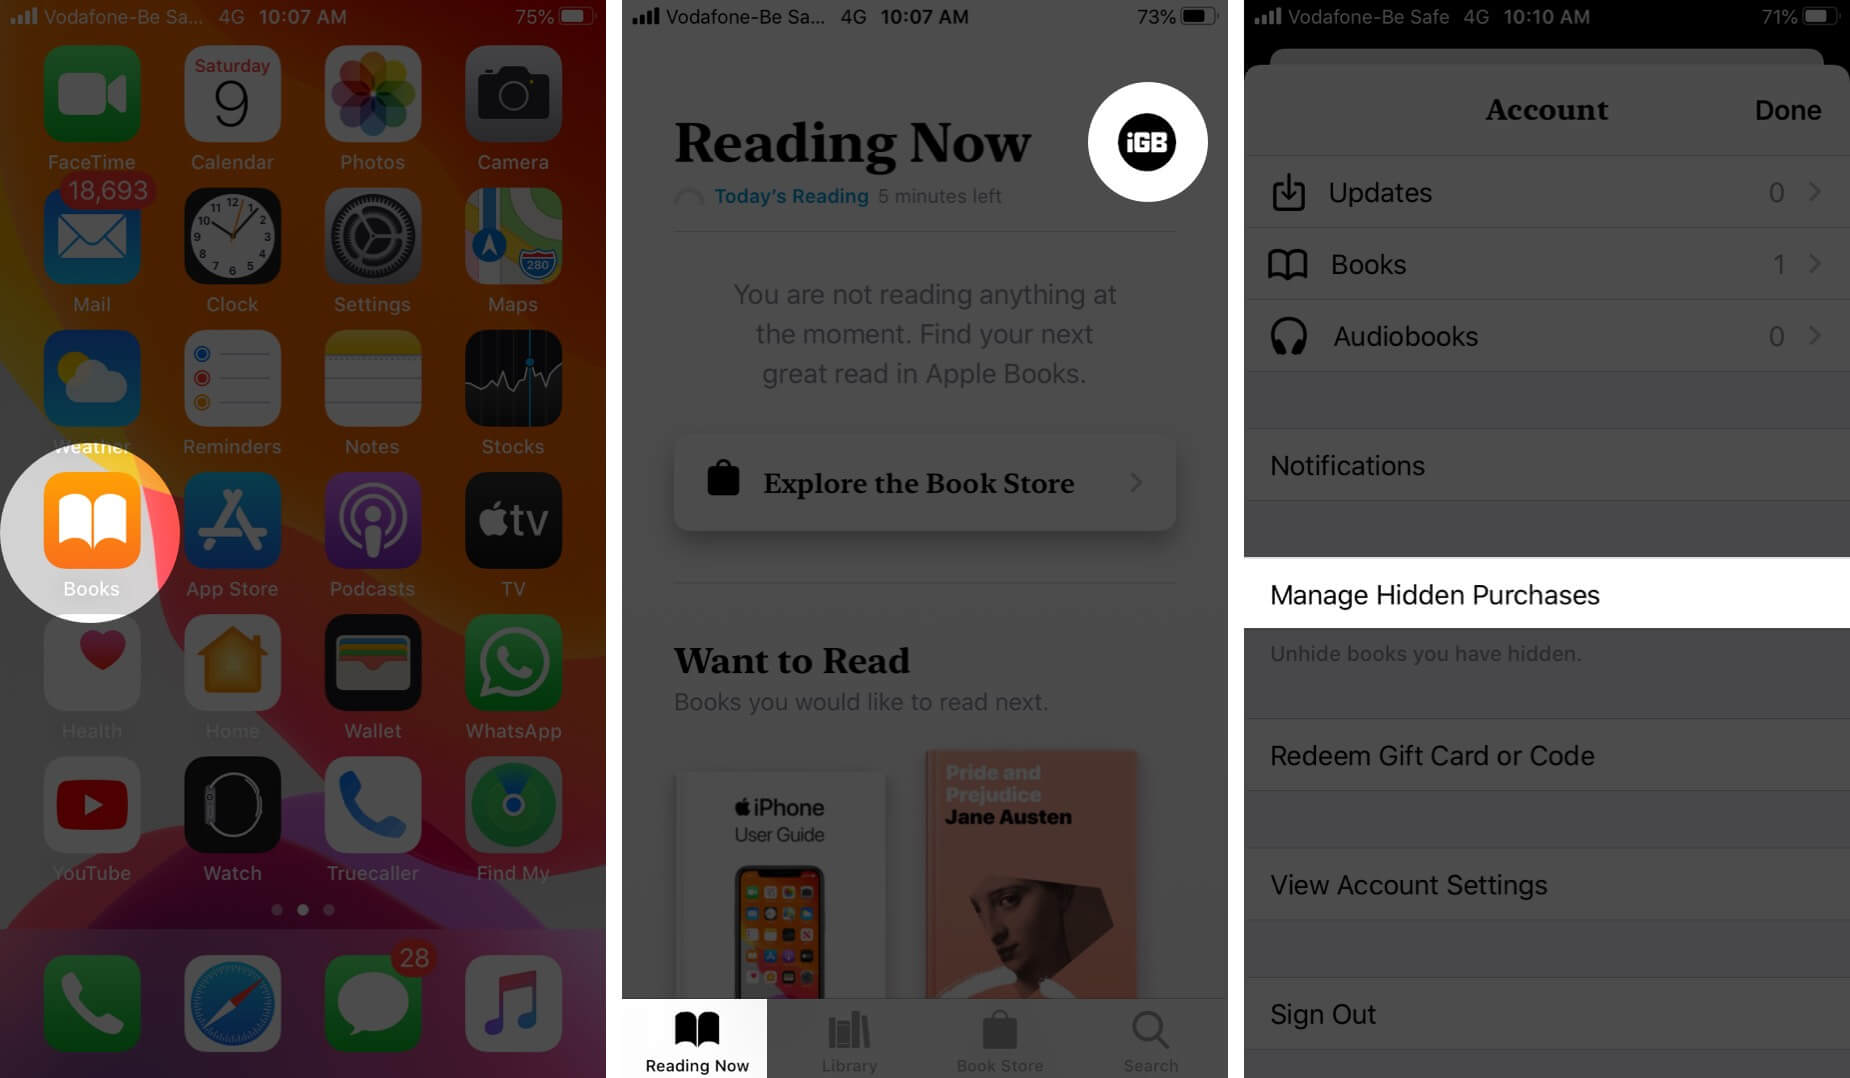 Open Books App Tap on Profile and Then Tap on Manage Hidden Purchases